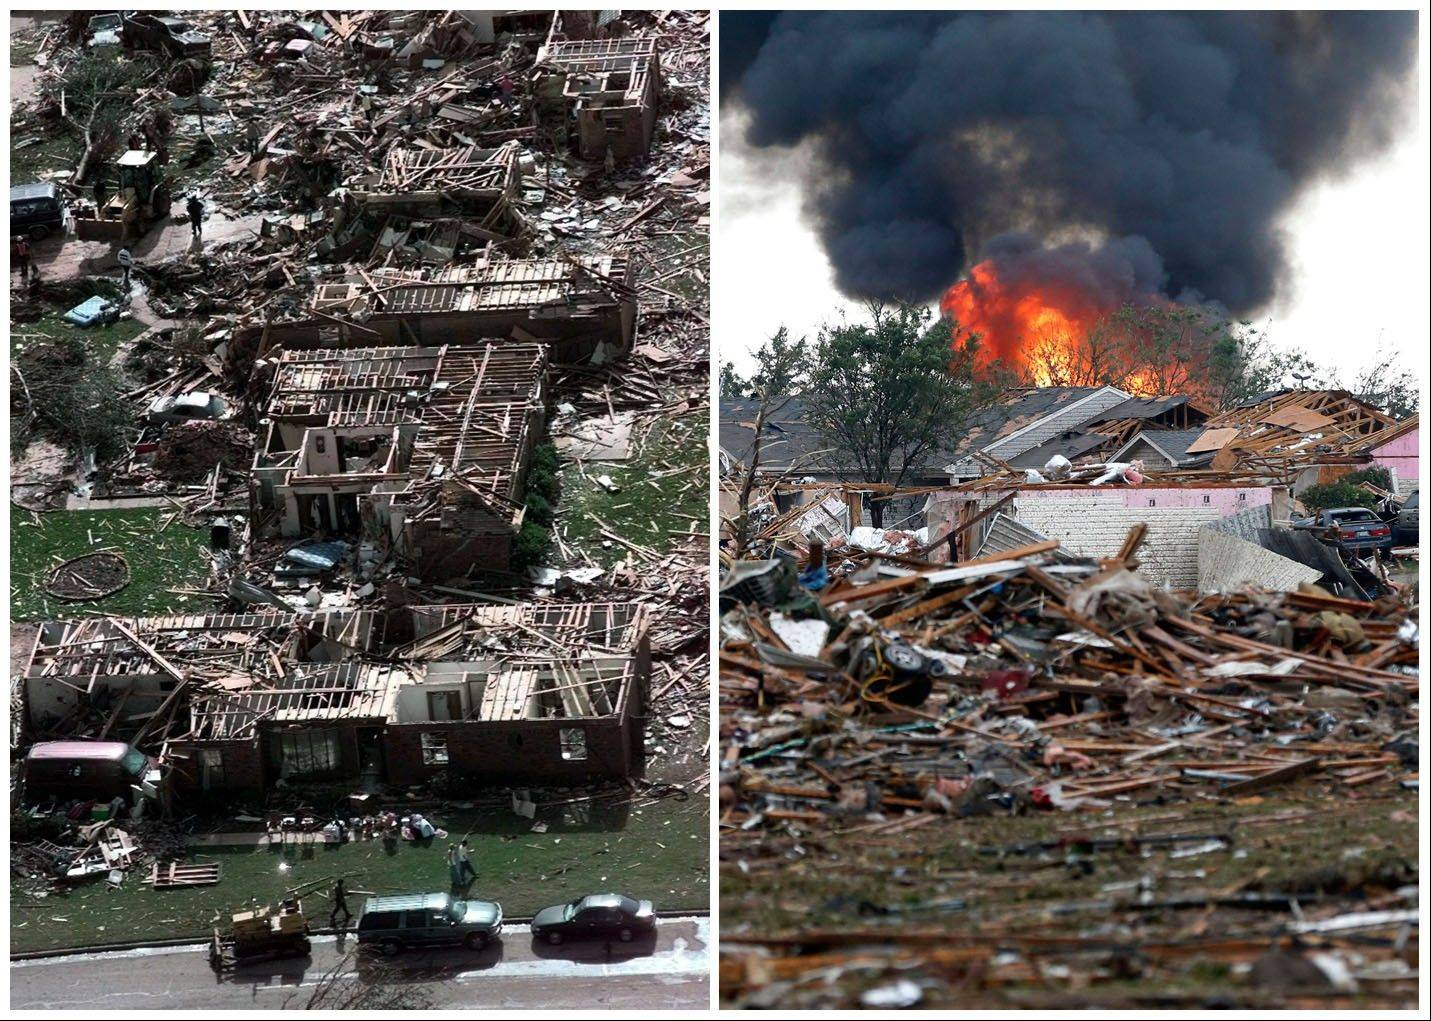 This combination of Associated Press photos shows left, a neighborhood in Moore, Okla., in ruins on Tuesday, May 4, 1999, after a tornado flattened many houses and buildings in central Oklahoma, and right, flattened houses in Moore on Monday, May 20, 2013. Monday's powerful tornado in suburban Oklahoma City loosely followed the path of a killer twister that slammed the region in May 1999.